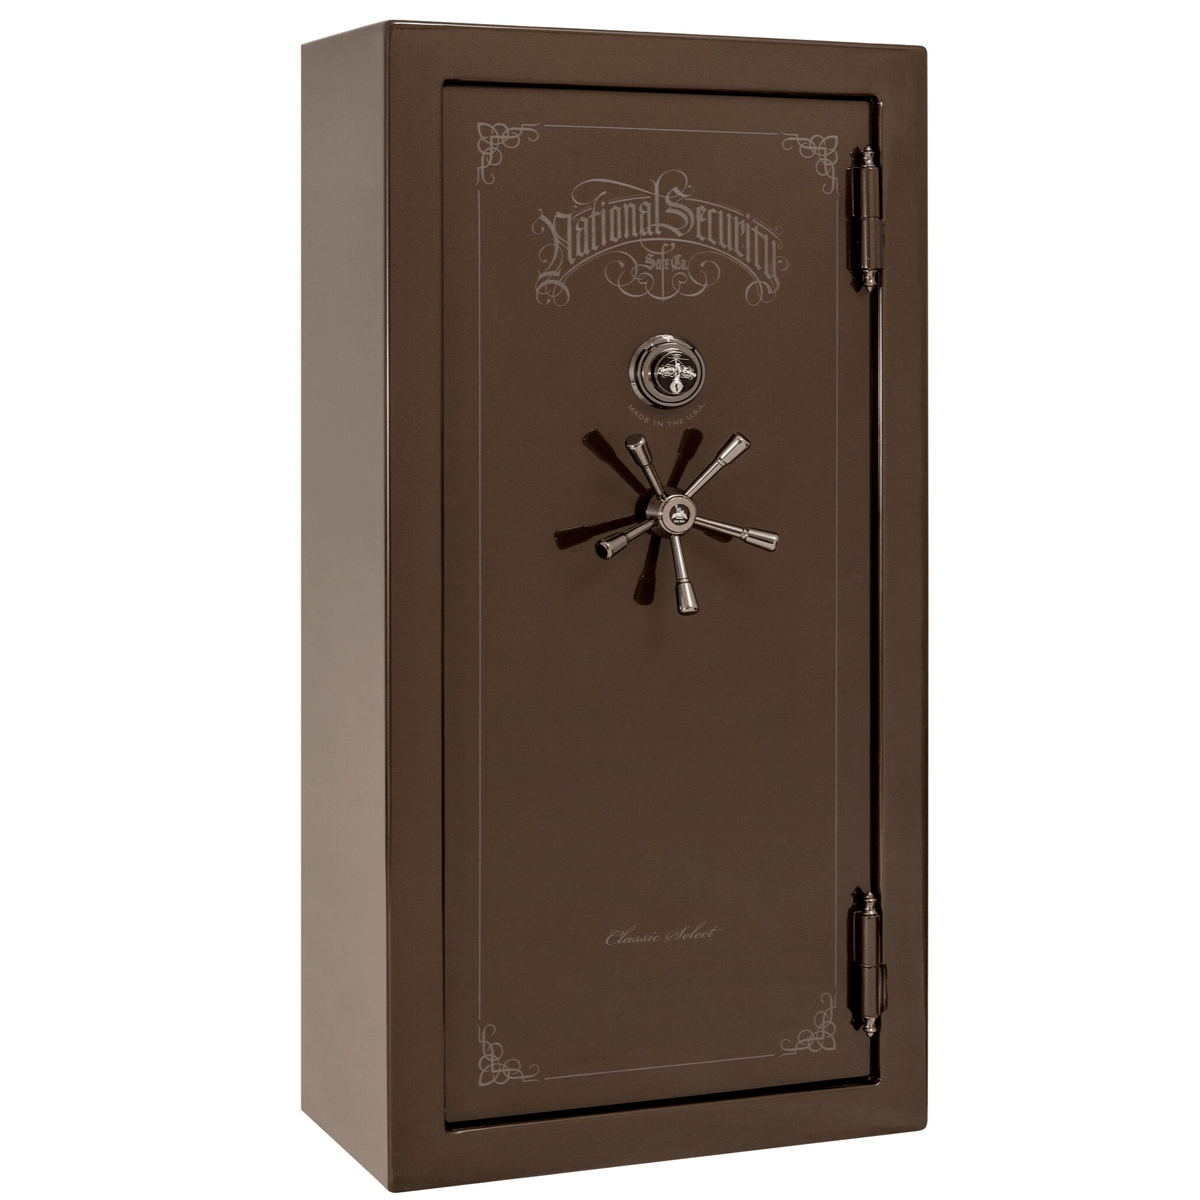 "Classic Select | 25 | Level 6 Security | 90 Minute Fire Protection | Bronze Gloss | Black Mechanical Lock | 60.5""(H) x 30""(W) x 28.5""(D)"